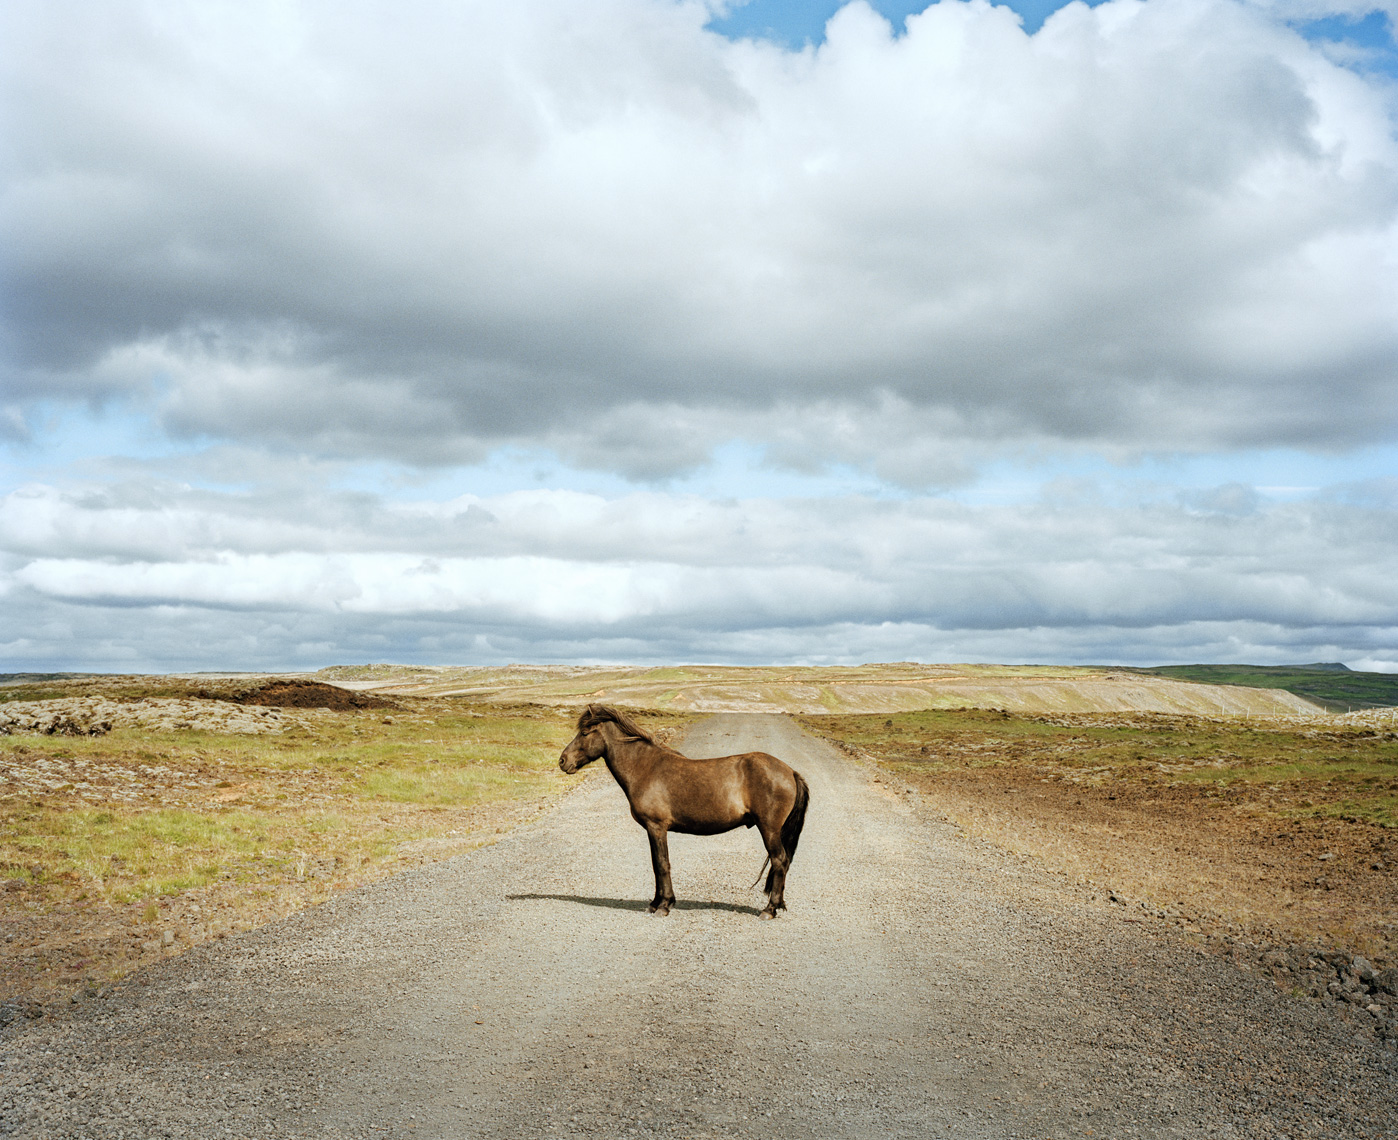 One Horse | Route 35